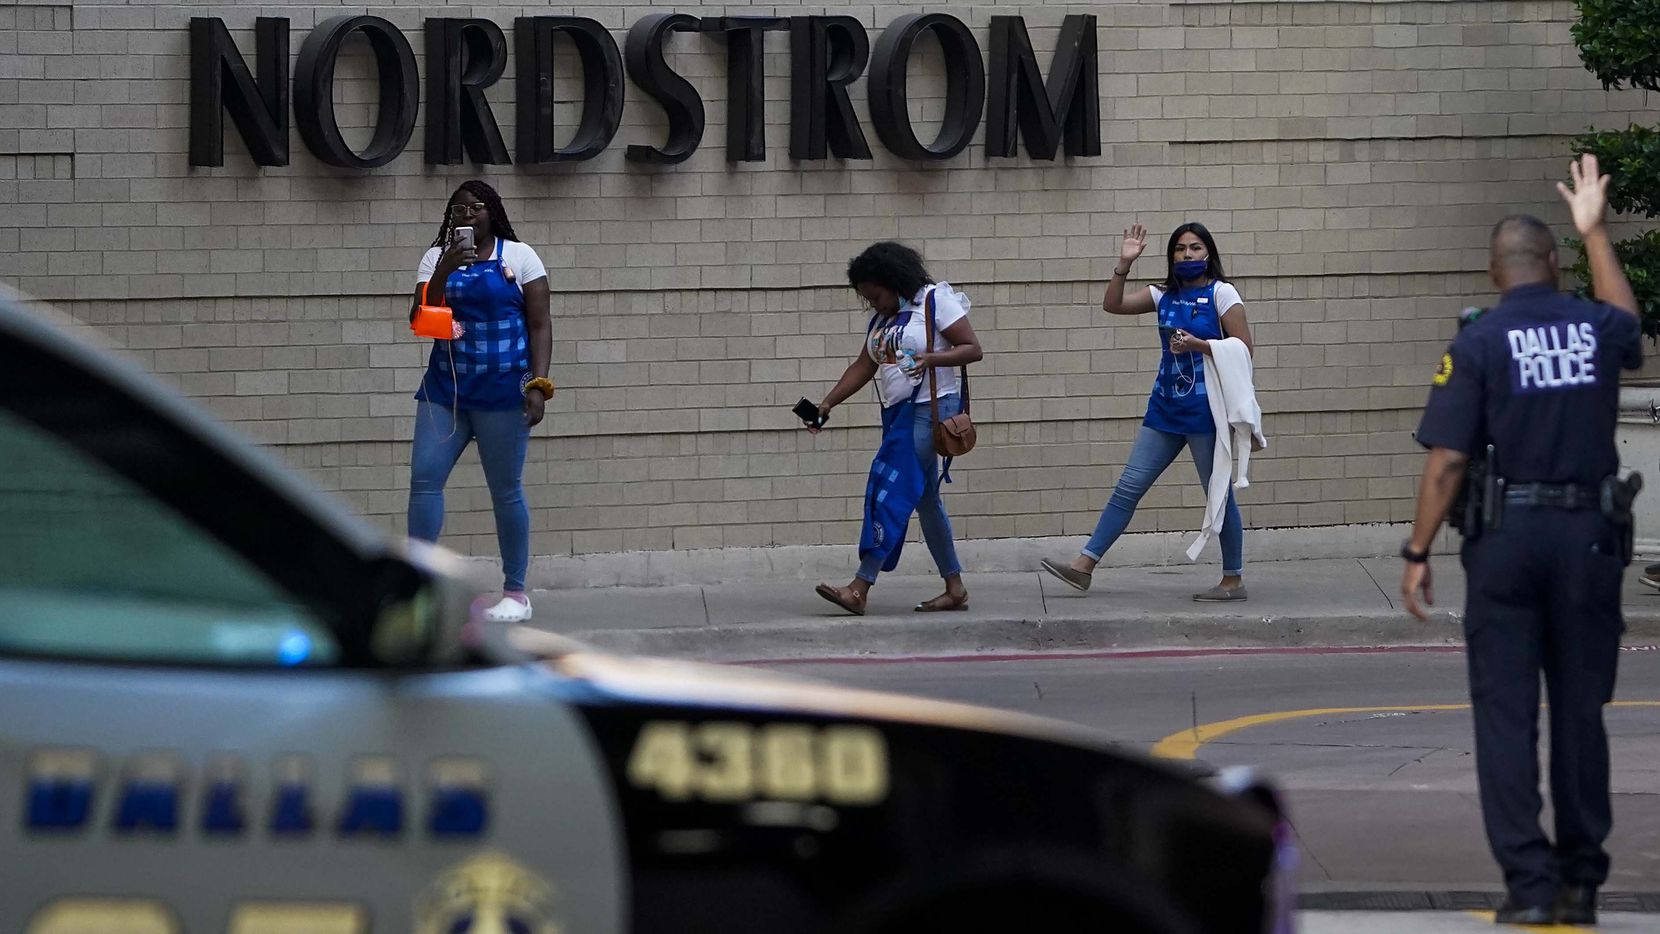 Dallas police direct people away from the Nordstrom store at the Galleria Dallas on Tuesday.